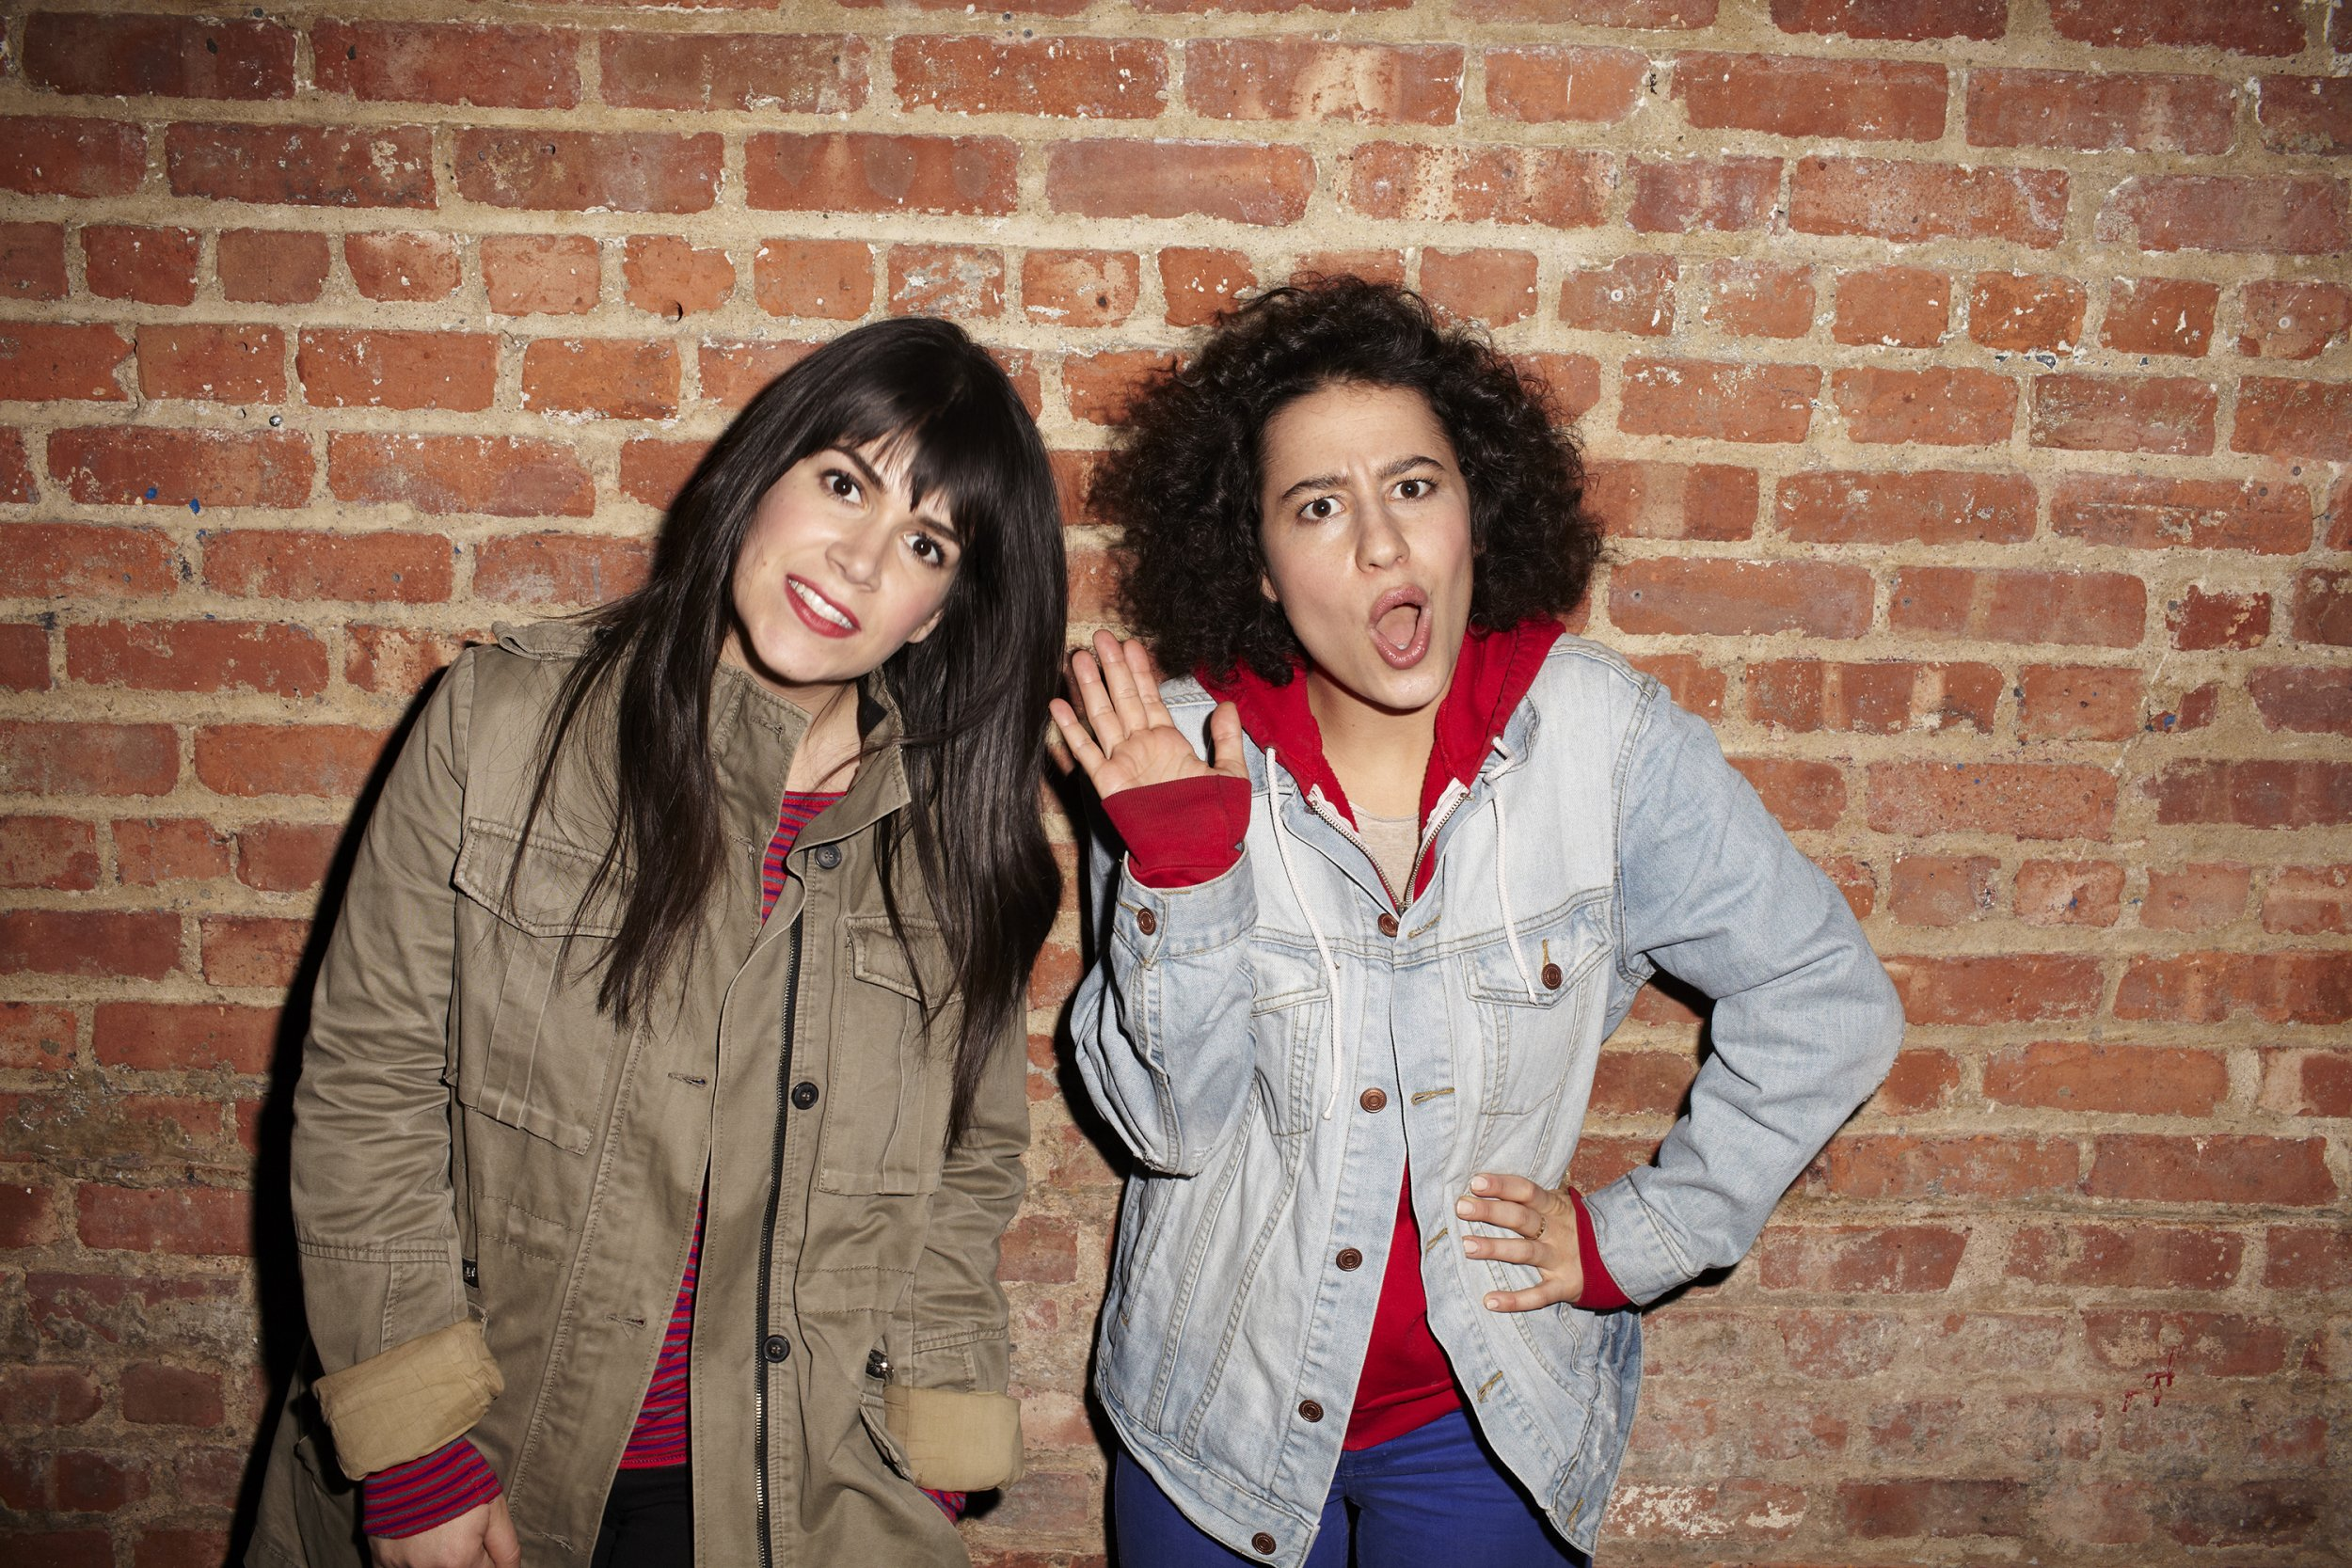 broad-city_abbi-jacobson-ilana-glazer-photocredit_lane-savage